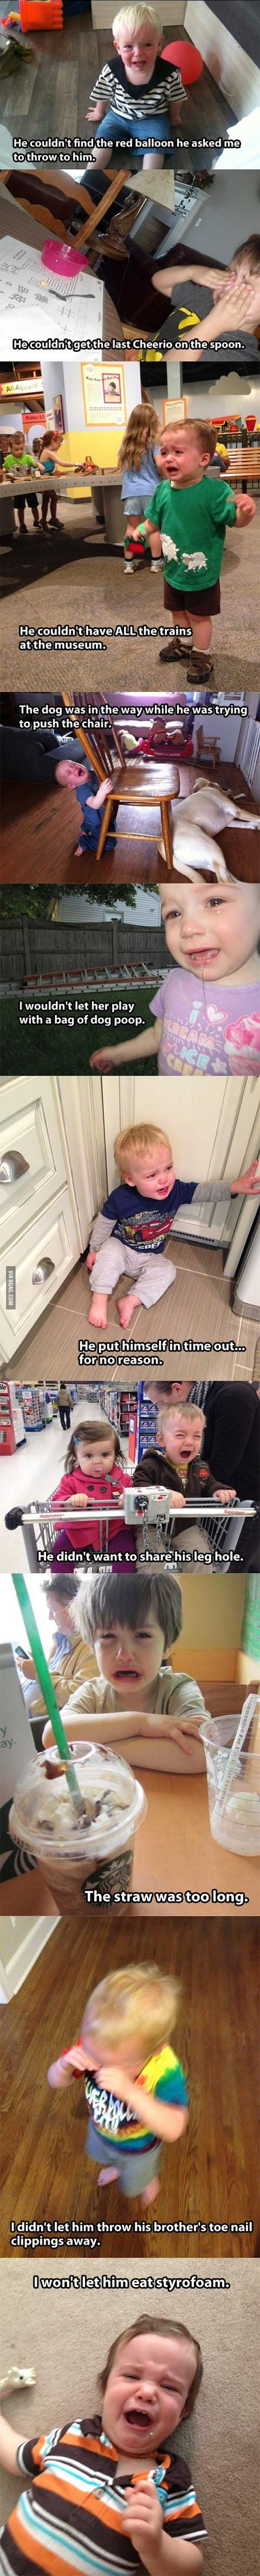 Reasons why your kid is crying. Hilarious